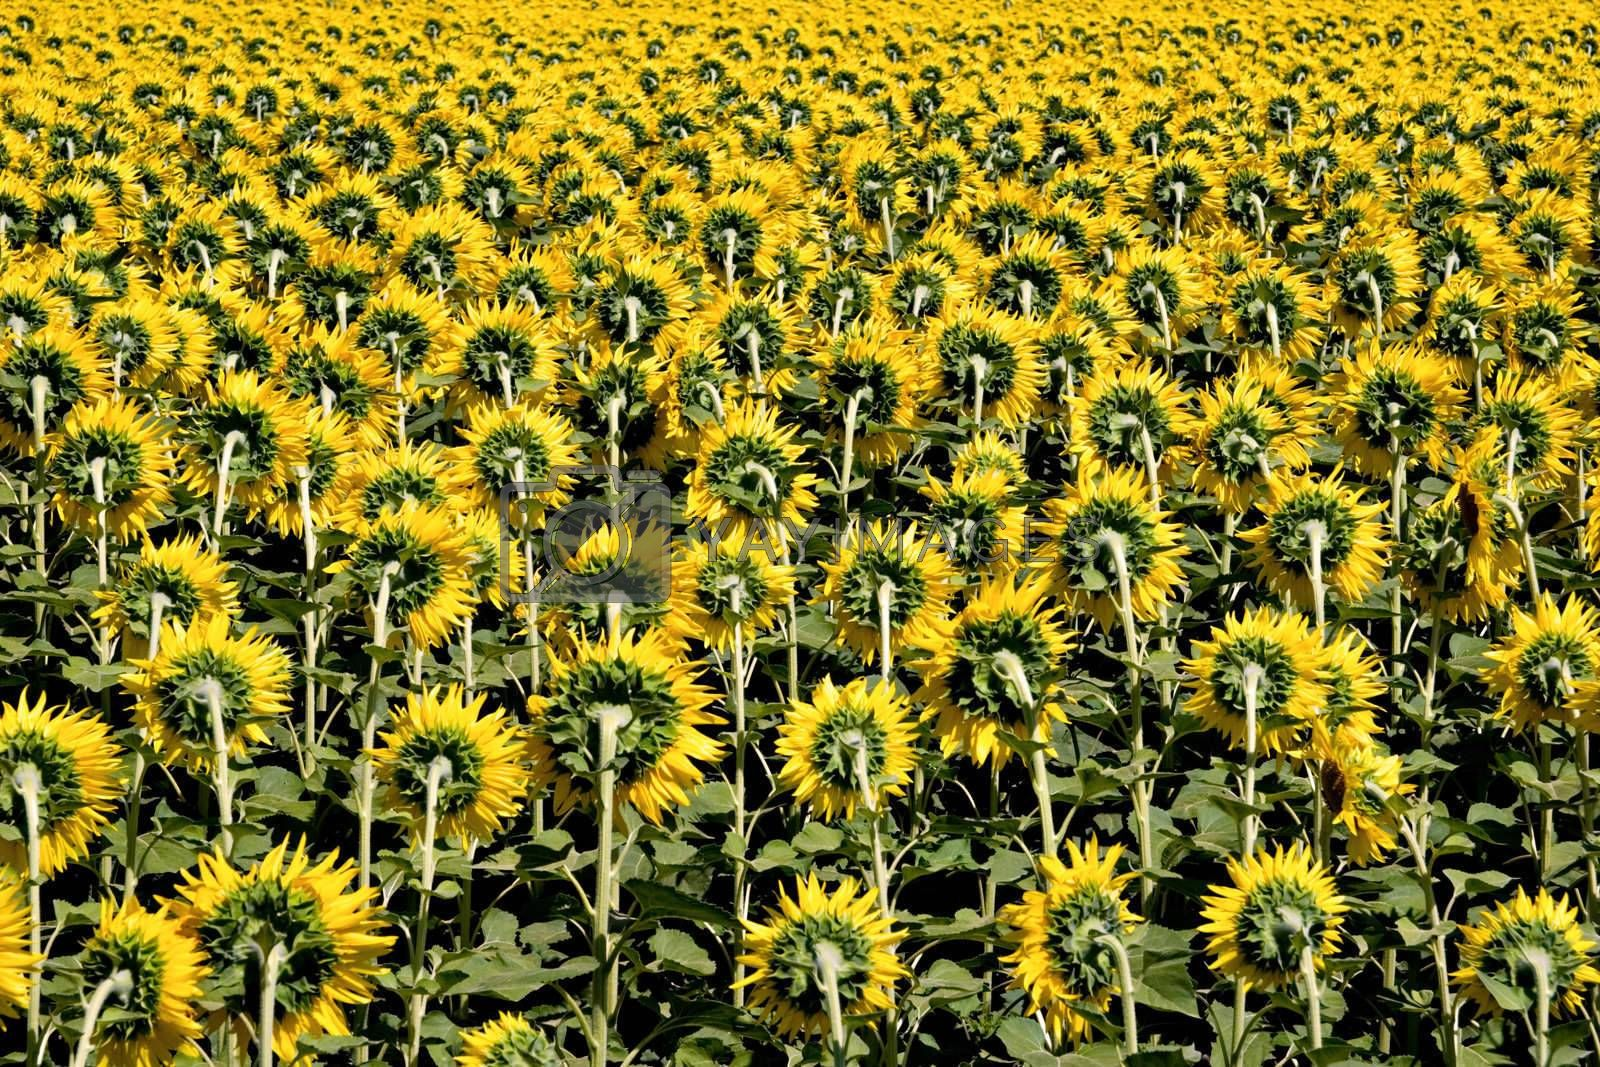 Field of Sunflowers background